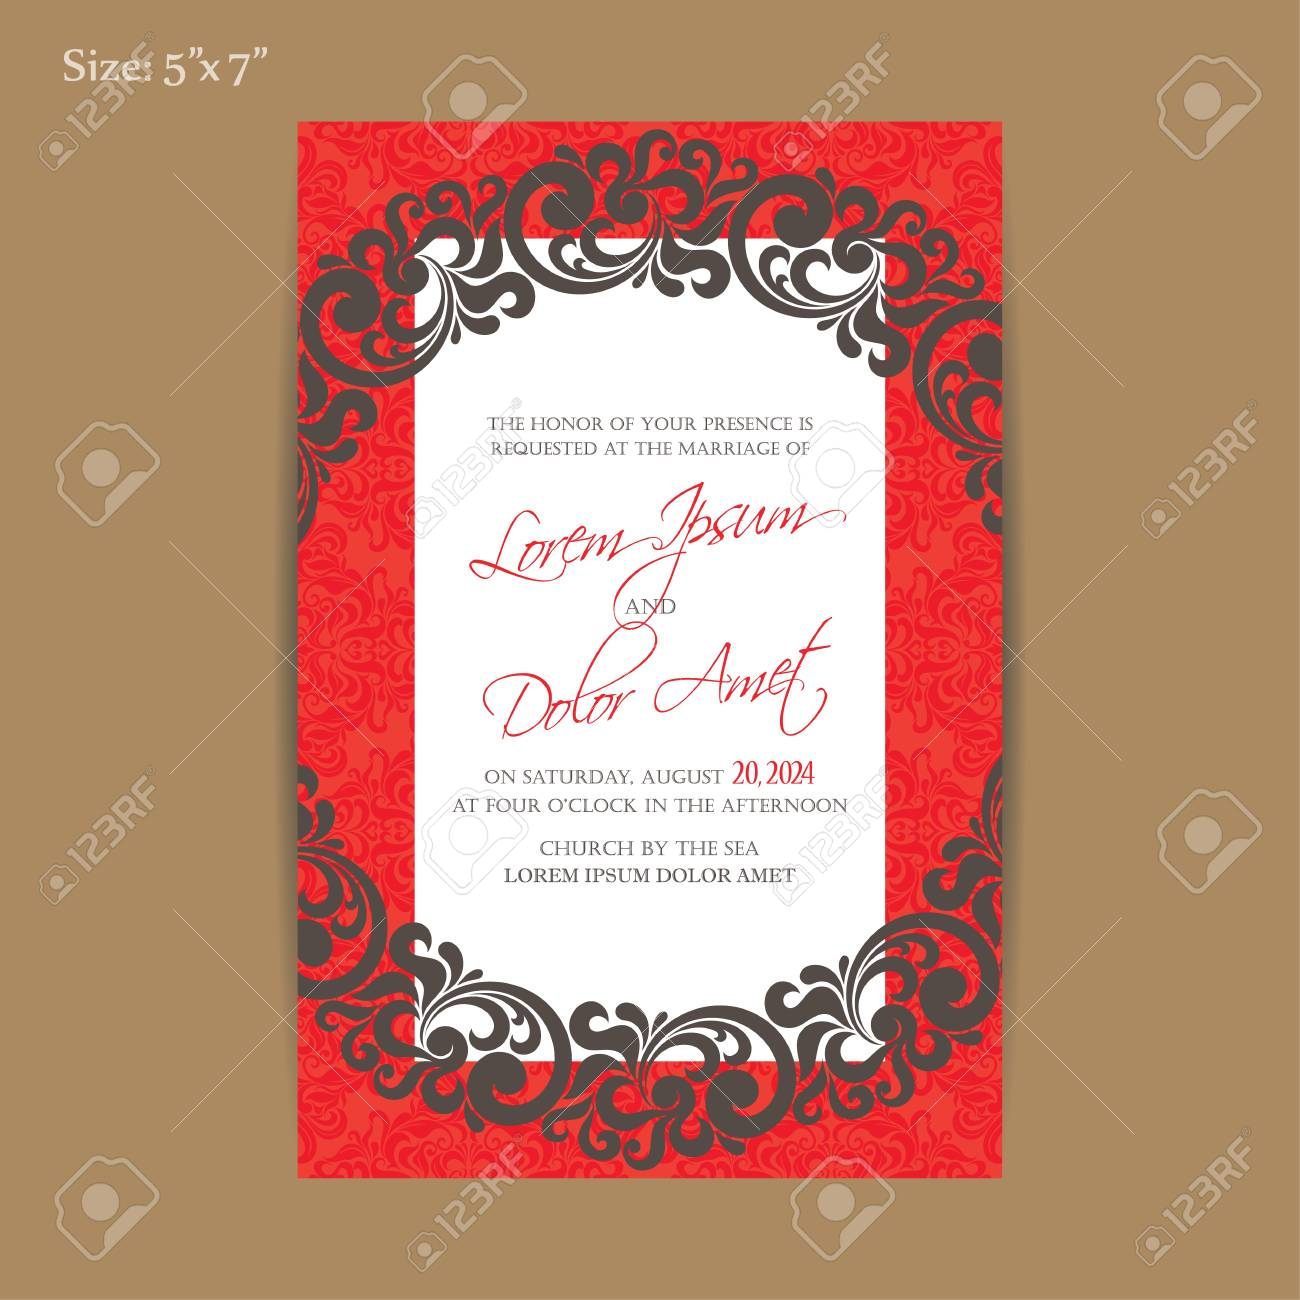 Luxury Vintage Wedding Invitation Card. Royalty Free Cliparts ...